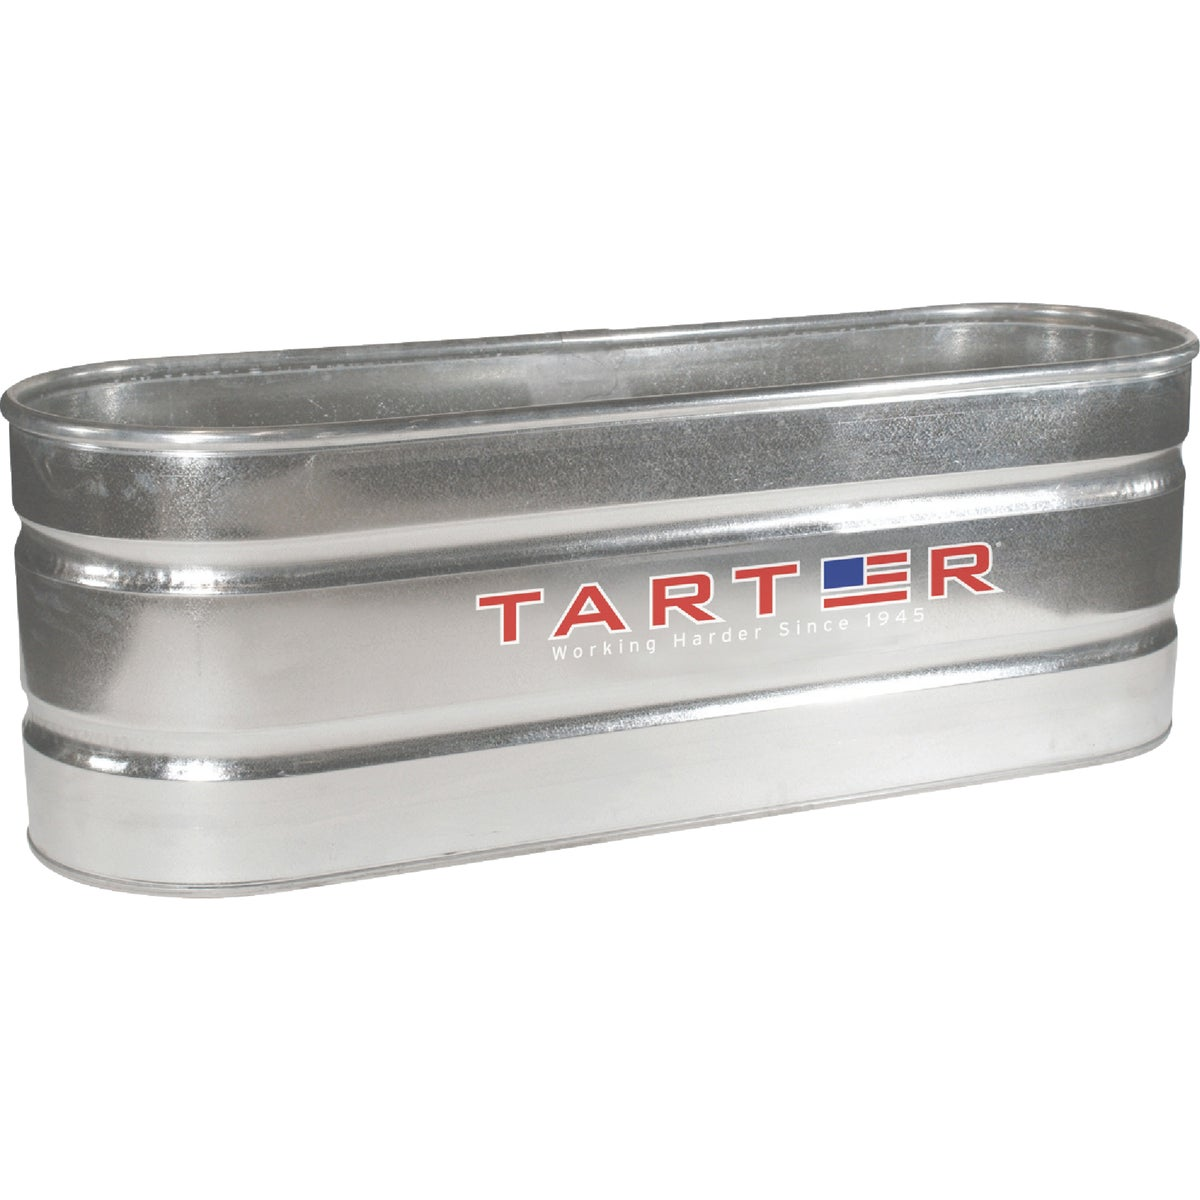 169GAL GLV WATER TANK - WT226 by Tarter Llc